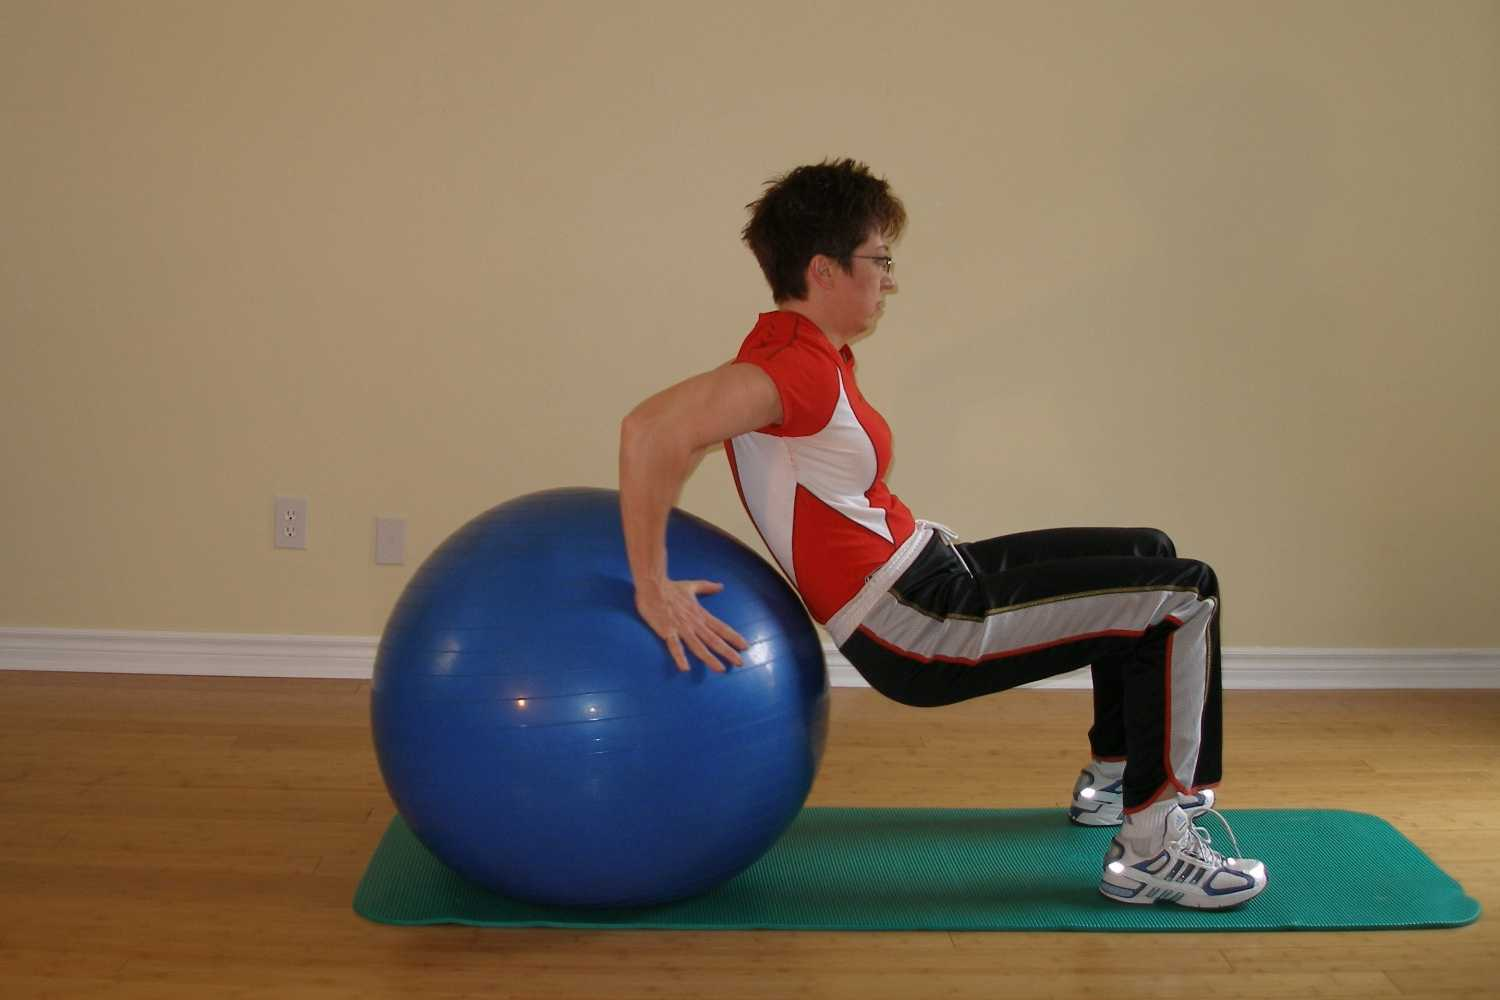 Triceps dip on the exercise ball